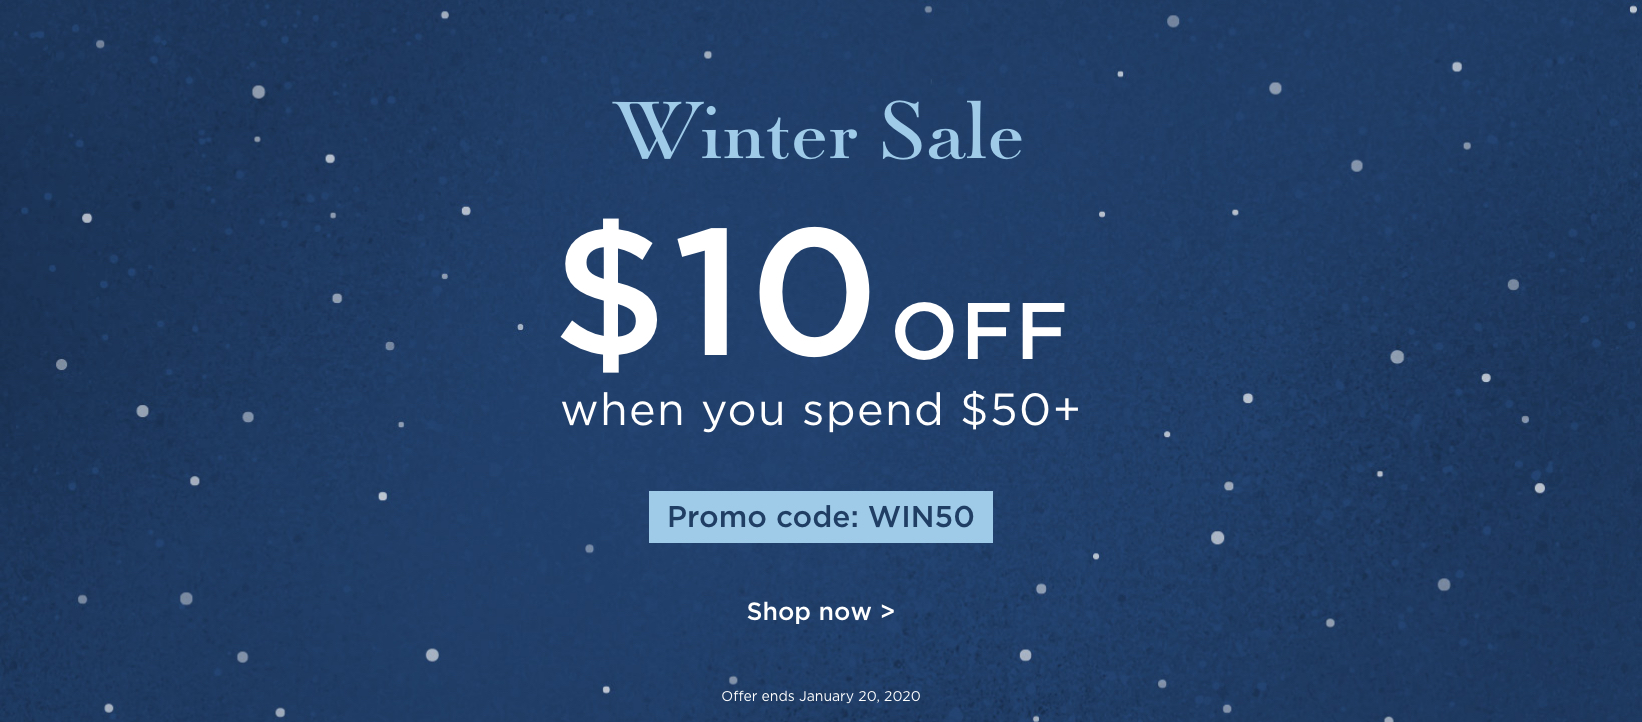 $10 off when you spend $50+ - Promo code: WIN50